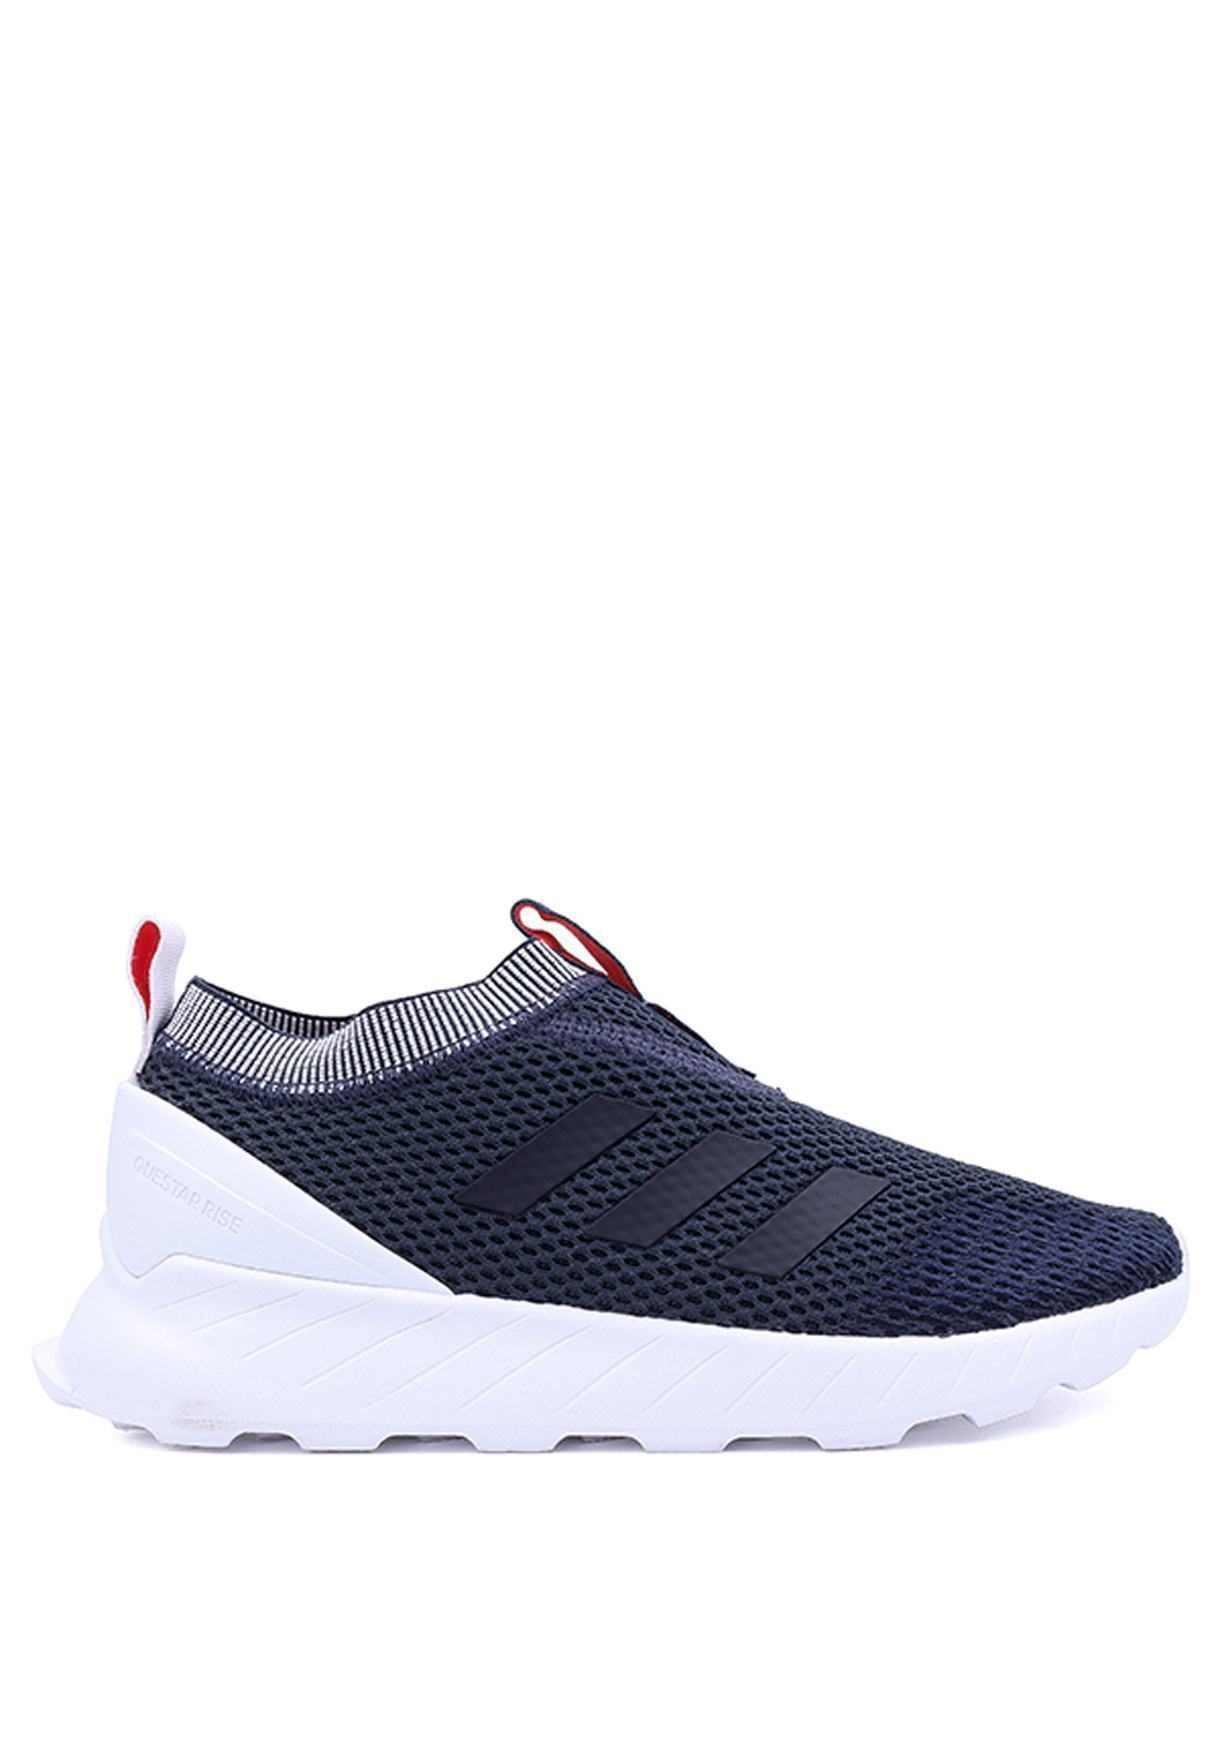 ADULT RUNNING SHOES